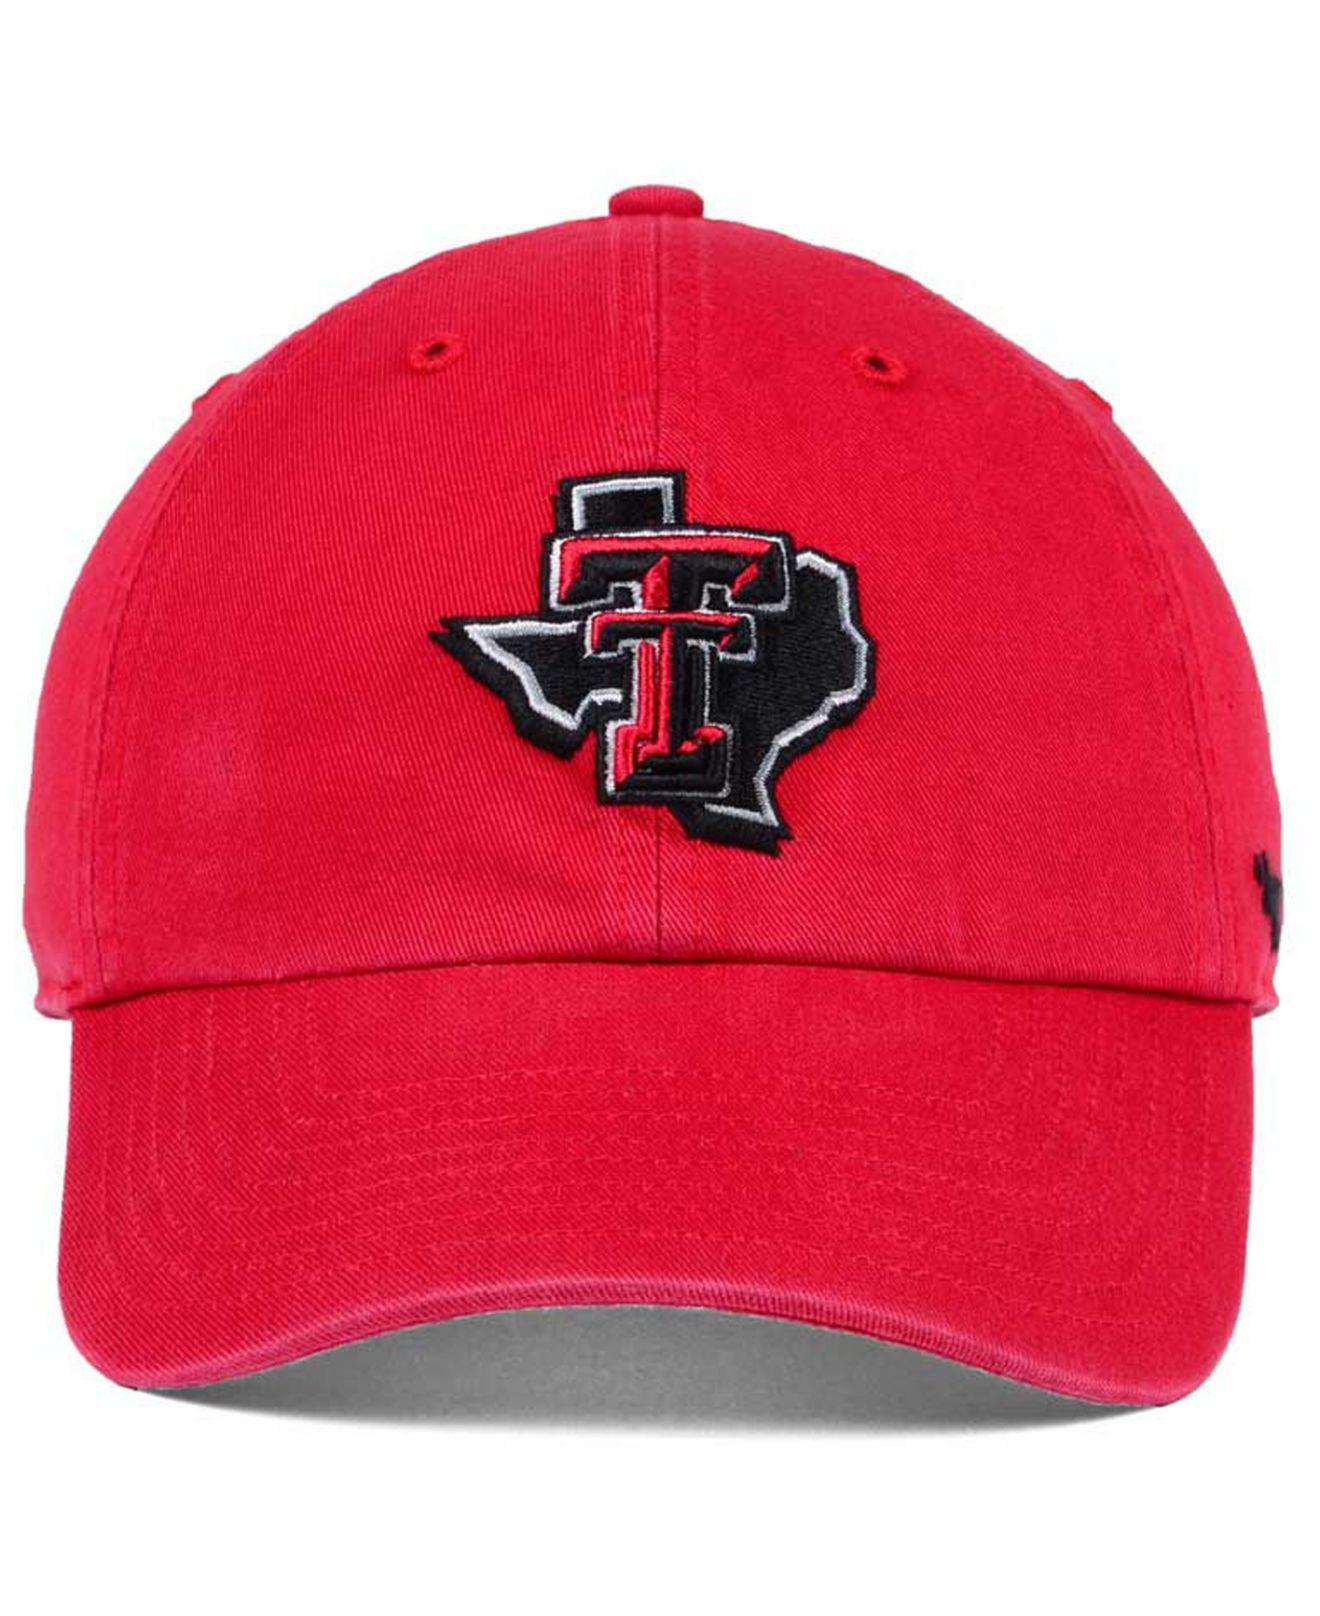 Lyst - 47 Brand Texas Tech Red Raiders Clean Up Cap in Red for Men 72f940e0f913